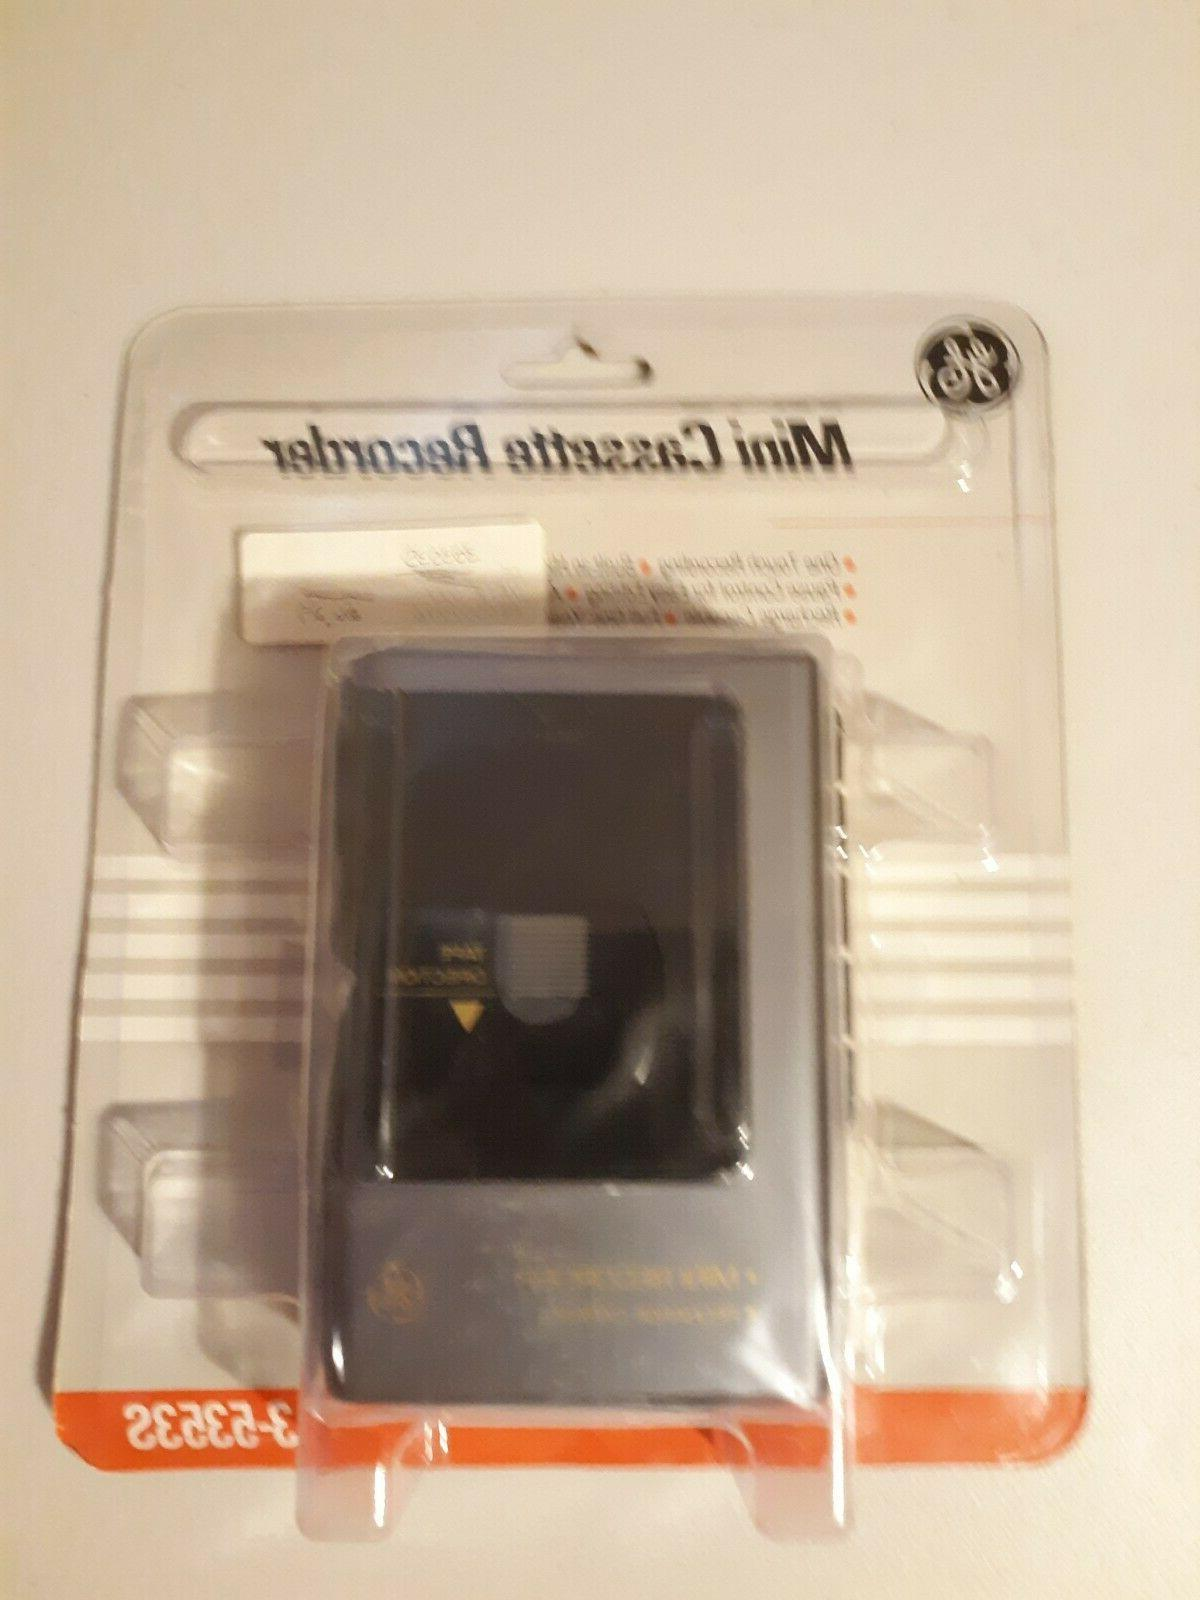 brand new neral electric mini cassette recorder